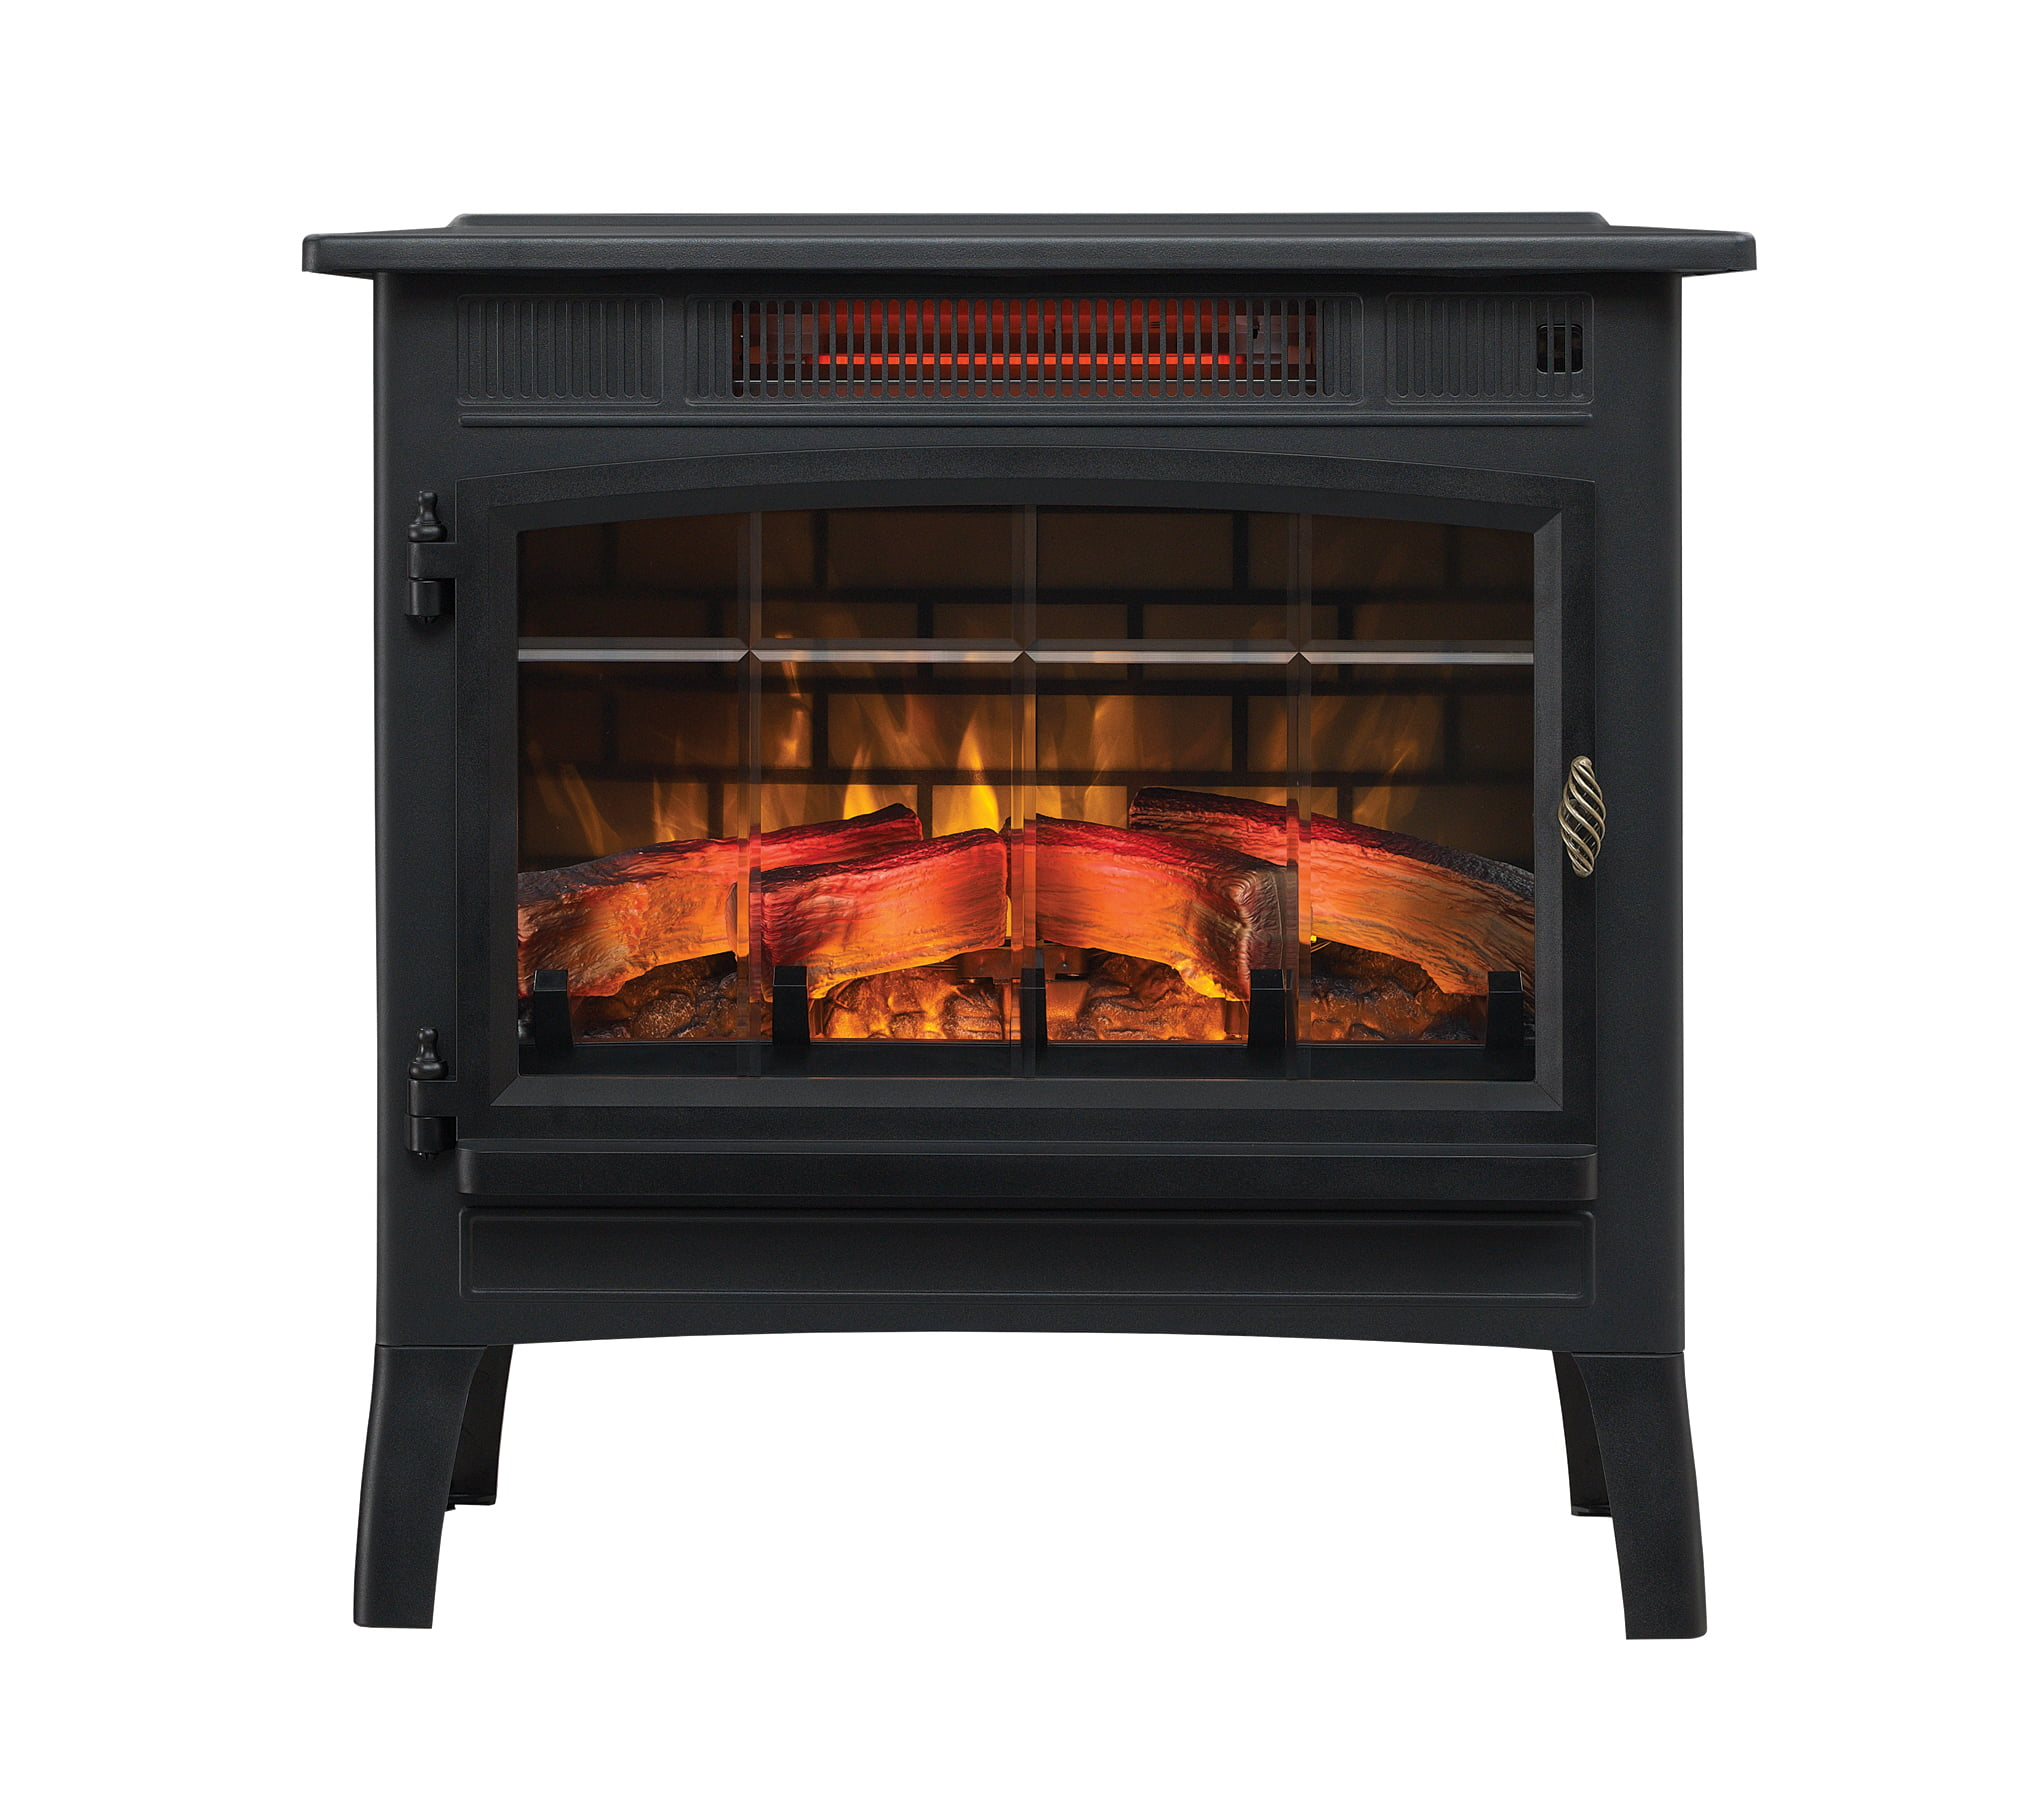 Duraflame Infrared Quartz Fireplace Stove with 3D Flame Effect, Black by Twin-Star International